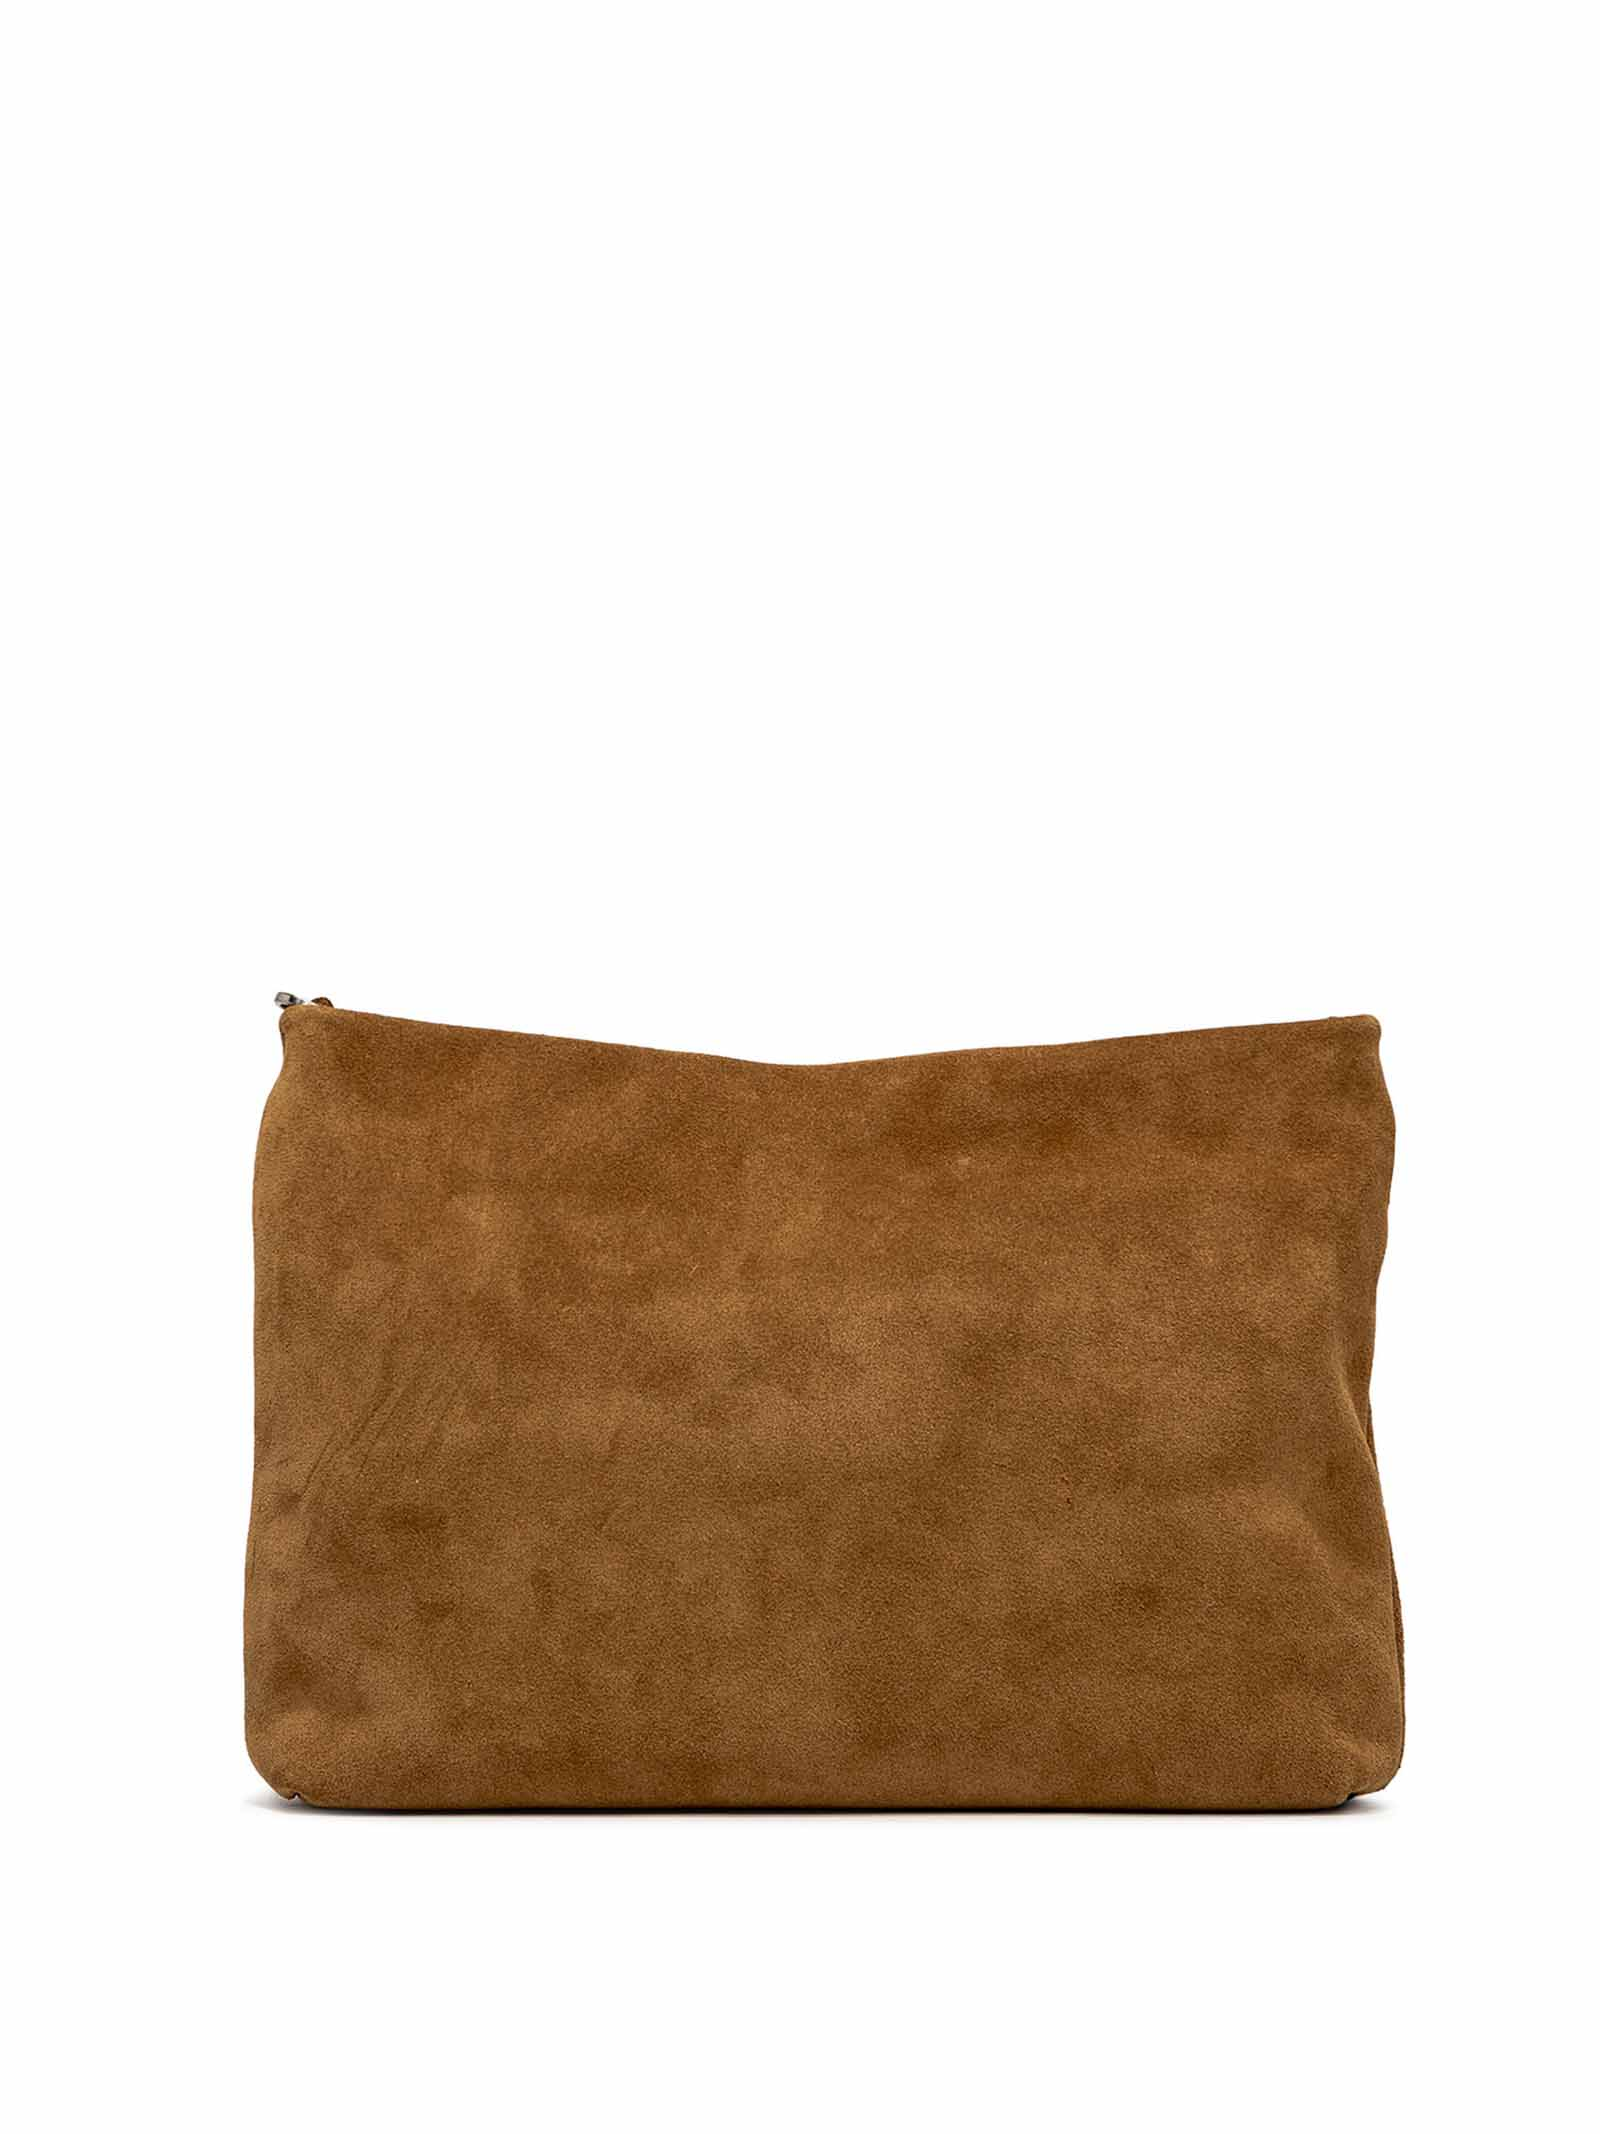 Woman's Shoulder Bag Mini Brenda In Tan Suede With Color Matched Chain And Adjustable And Detachable Cross-body Strap Gianni Chiarini | Bags and backpacks | BS8265206